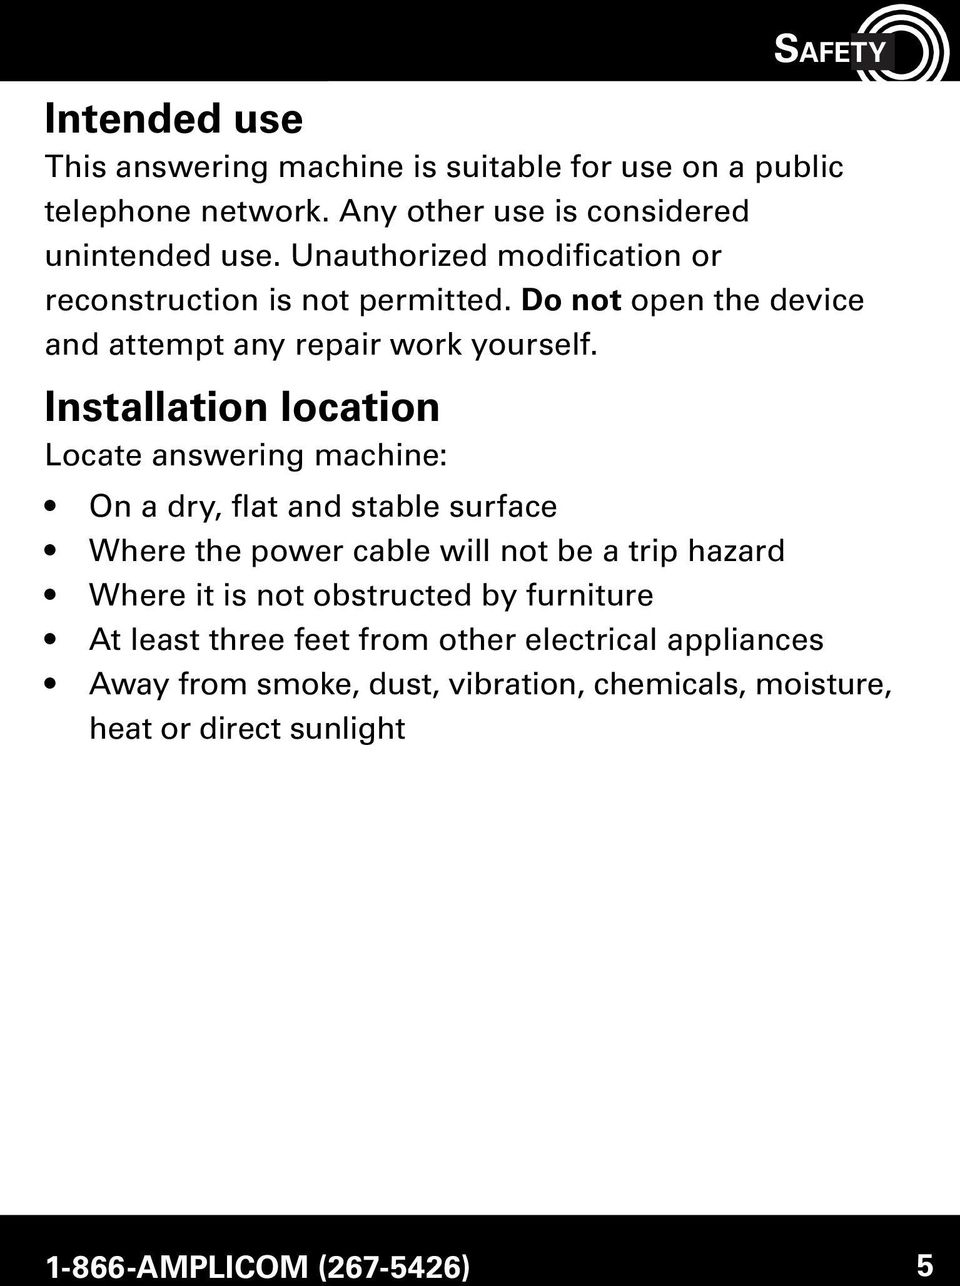 Installation location Locate answering machine: SAFETY On a dry, flat and stable surface Where the power cable will not be a trip hazard Where it